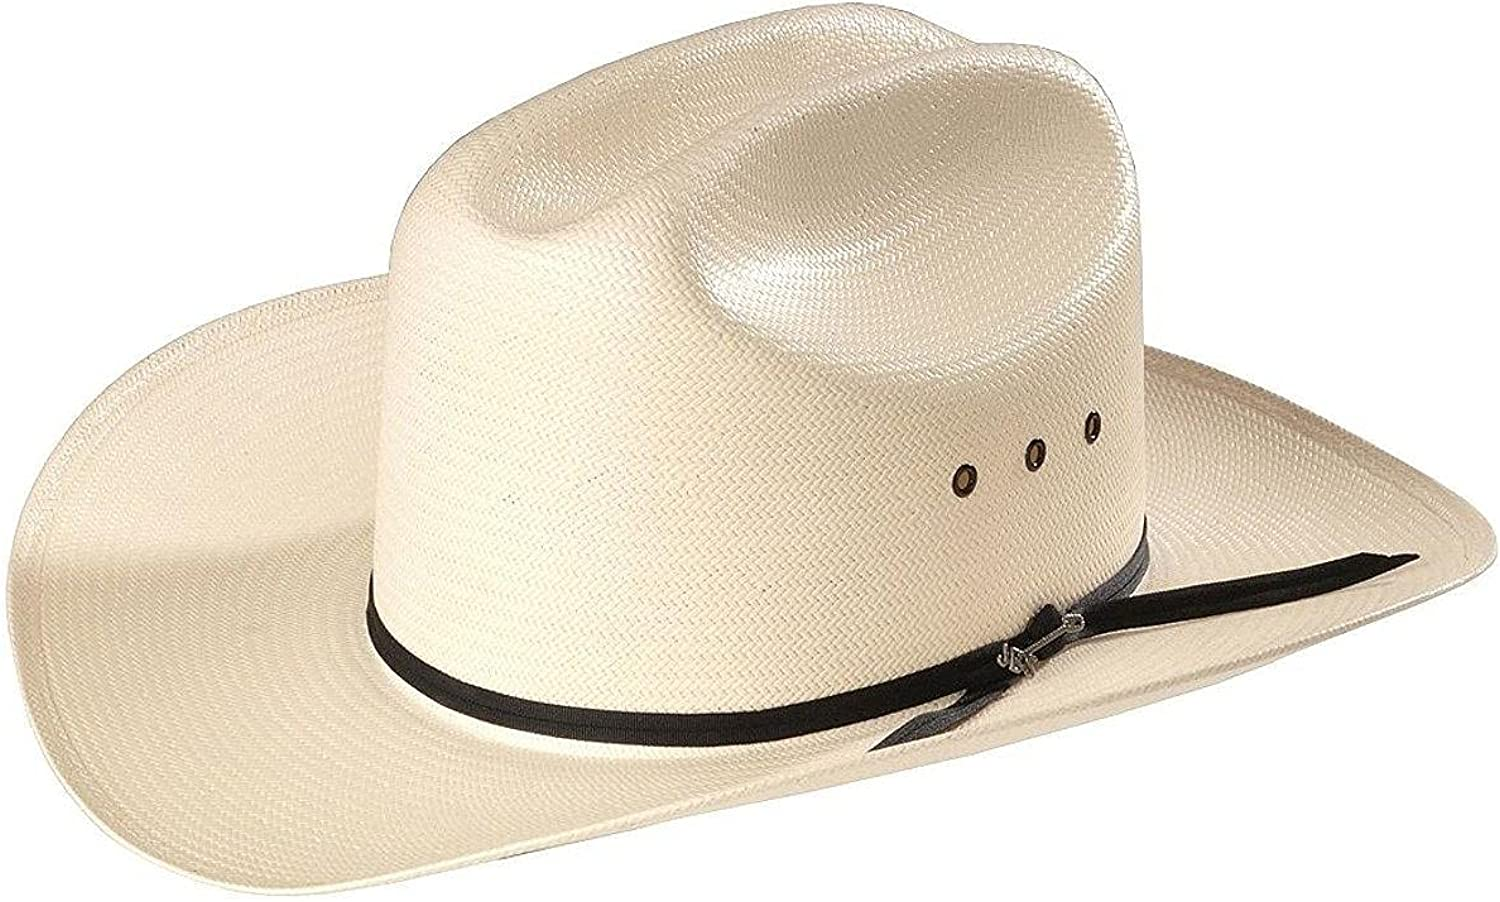 Stetson Straw Rancher Cowboy Hat Selling rankings 2 1 Manufacturer OFFicial shop Brim 3 Inch